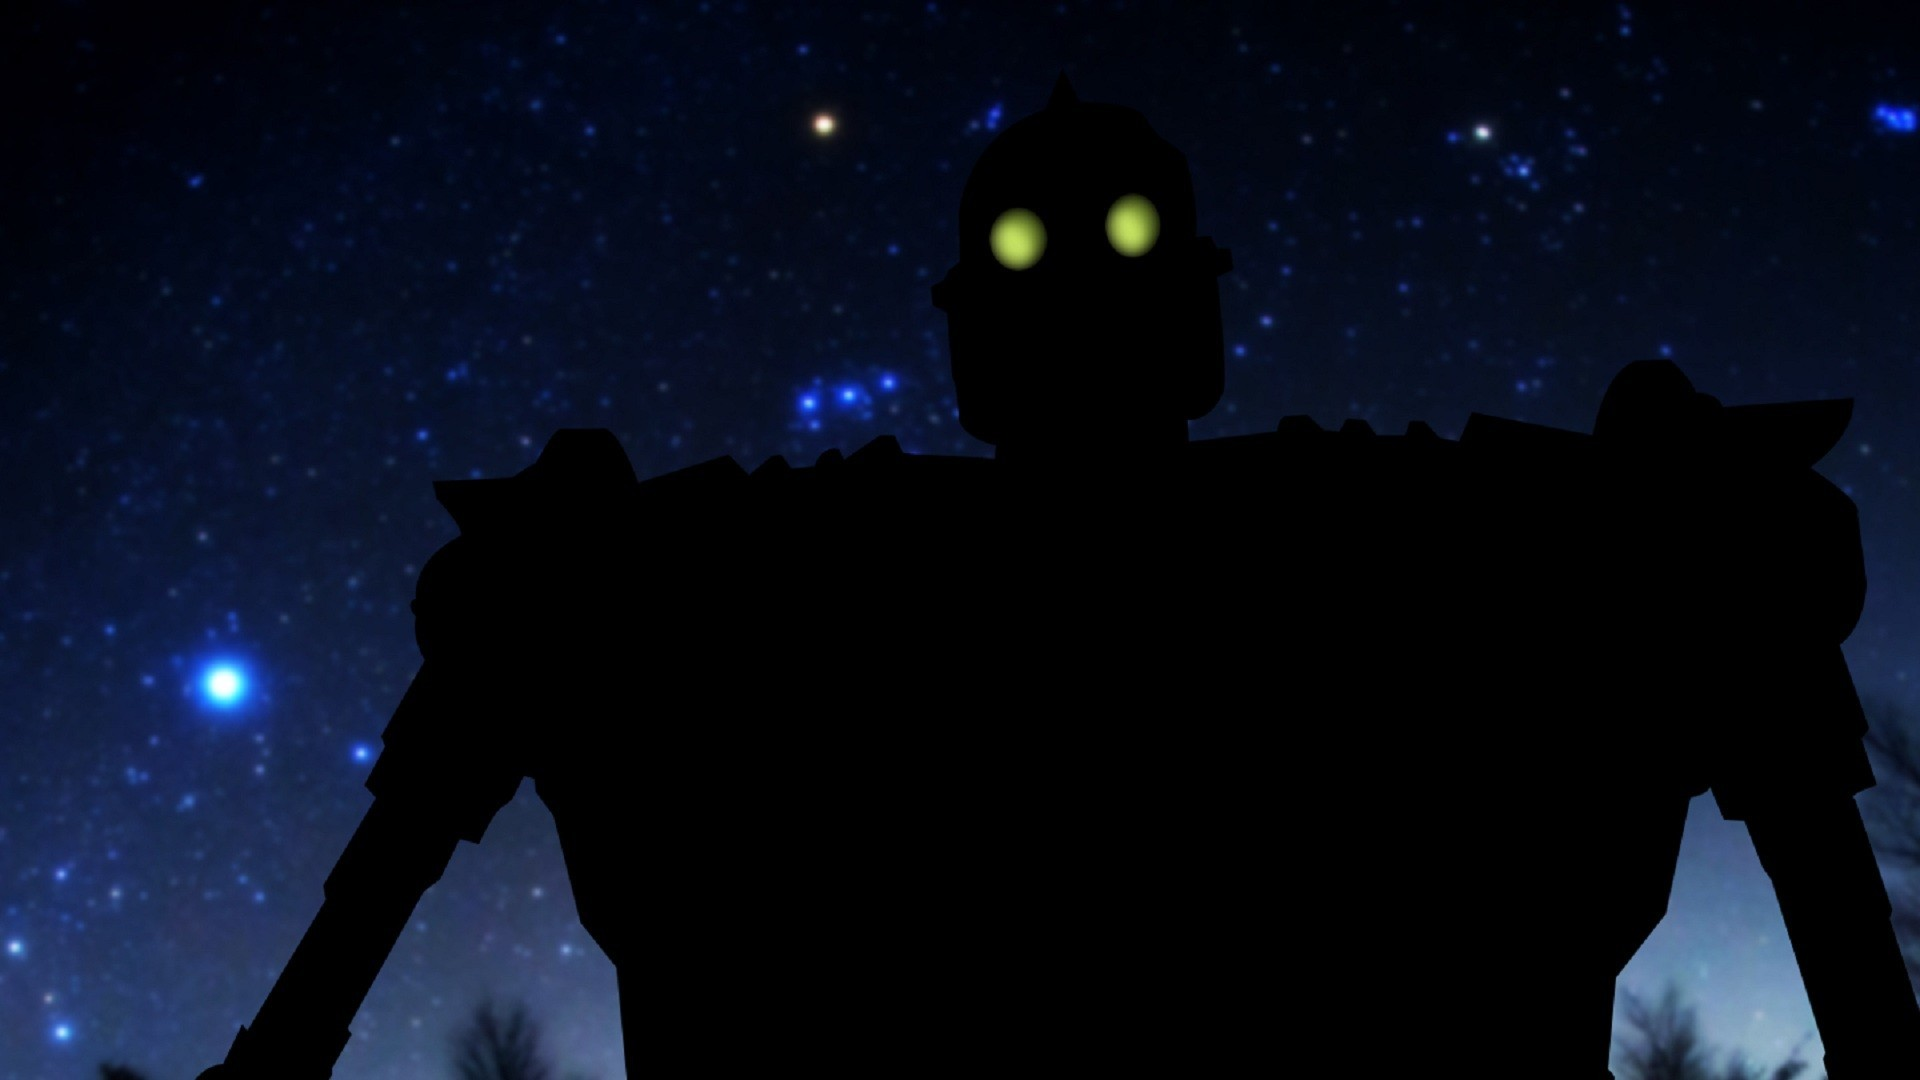 Digital Art, Alternative Art, Robot, Stars, The Iron Giant, Glowing Eyes.  Wallpaper Details